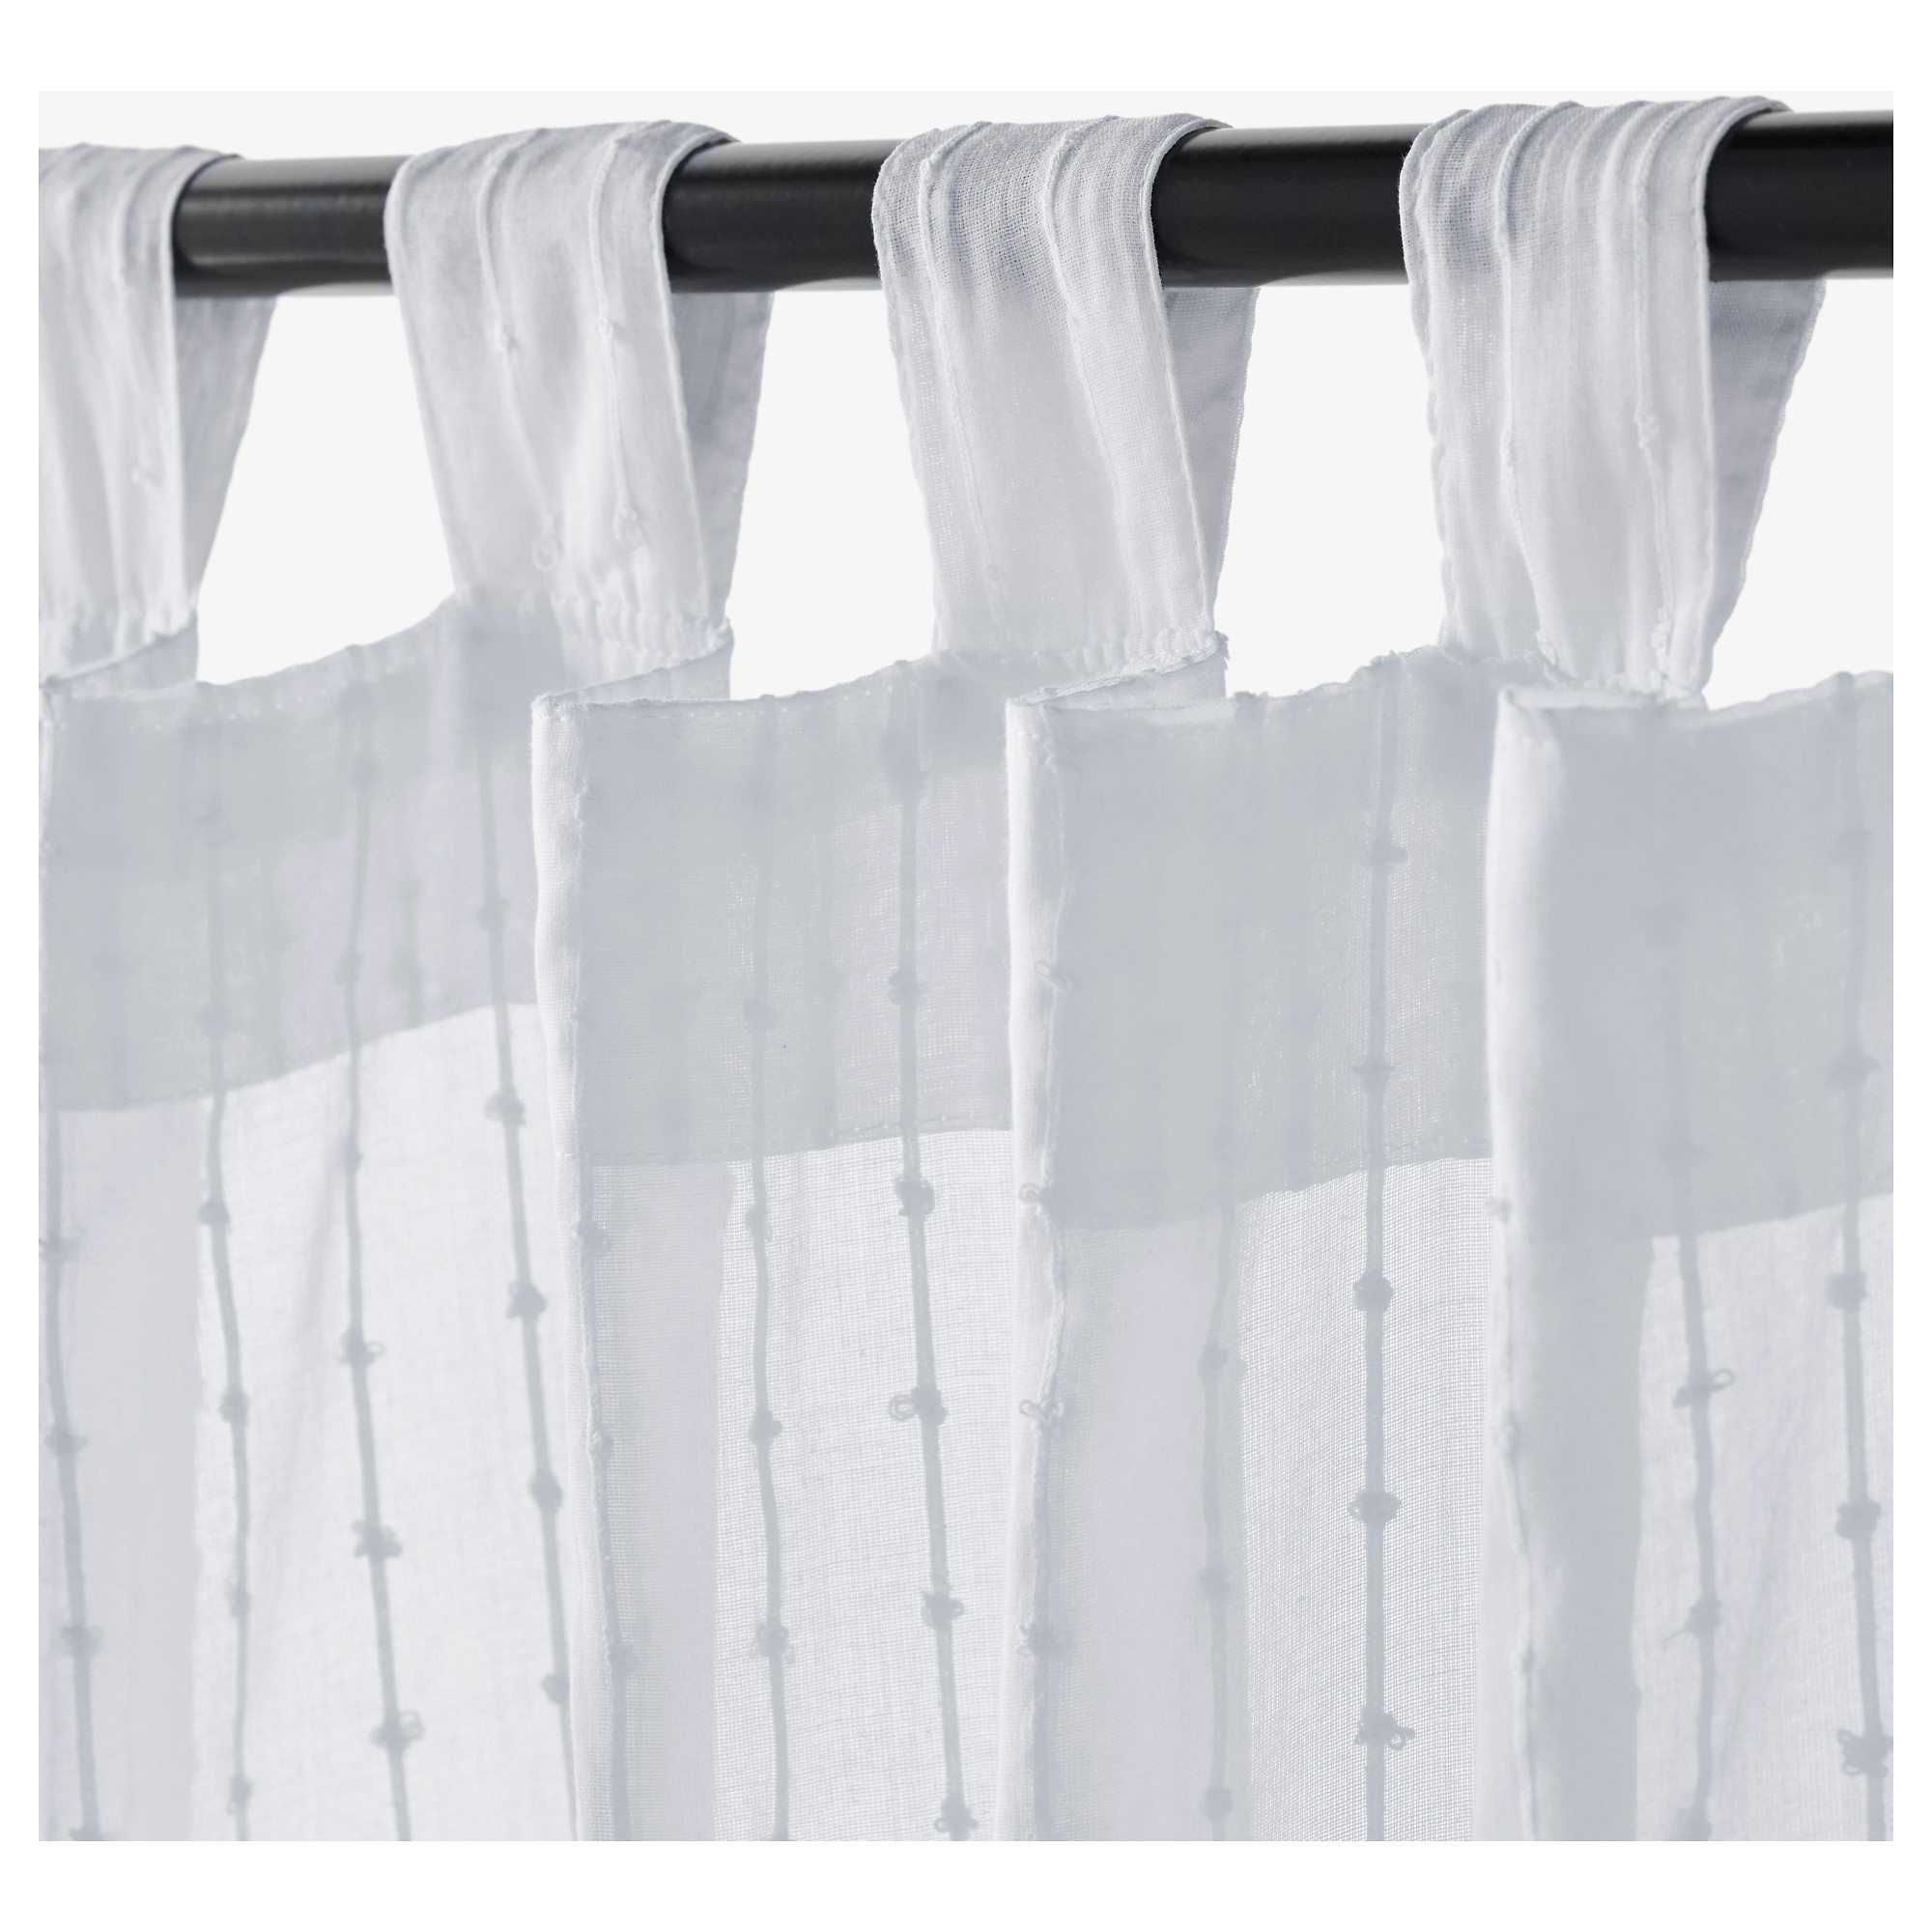 Matilda Sheer Curtains 1 Pair White 140×250 Cm Ikea Intended For White Sheer Cotton Curtains (Image 8 of 15)